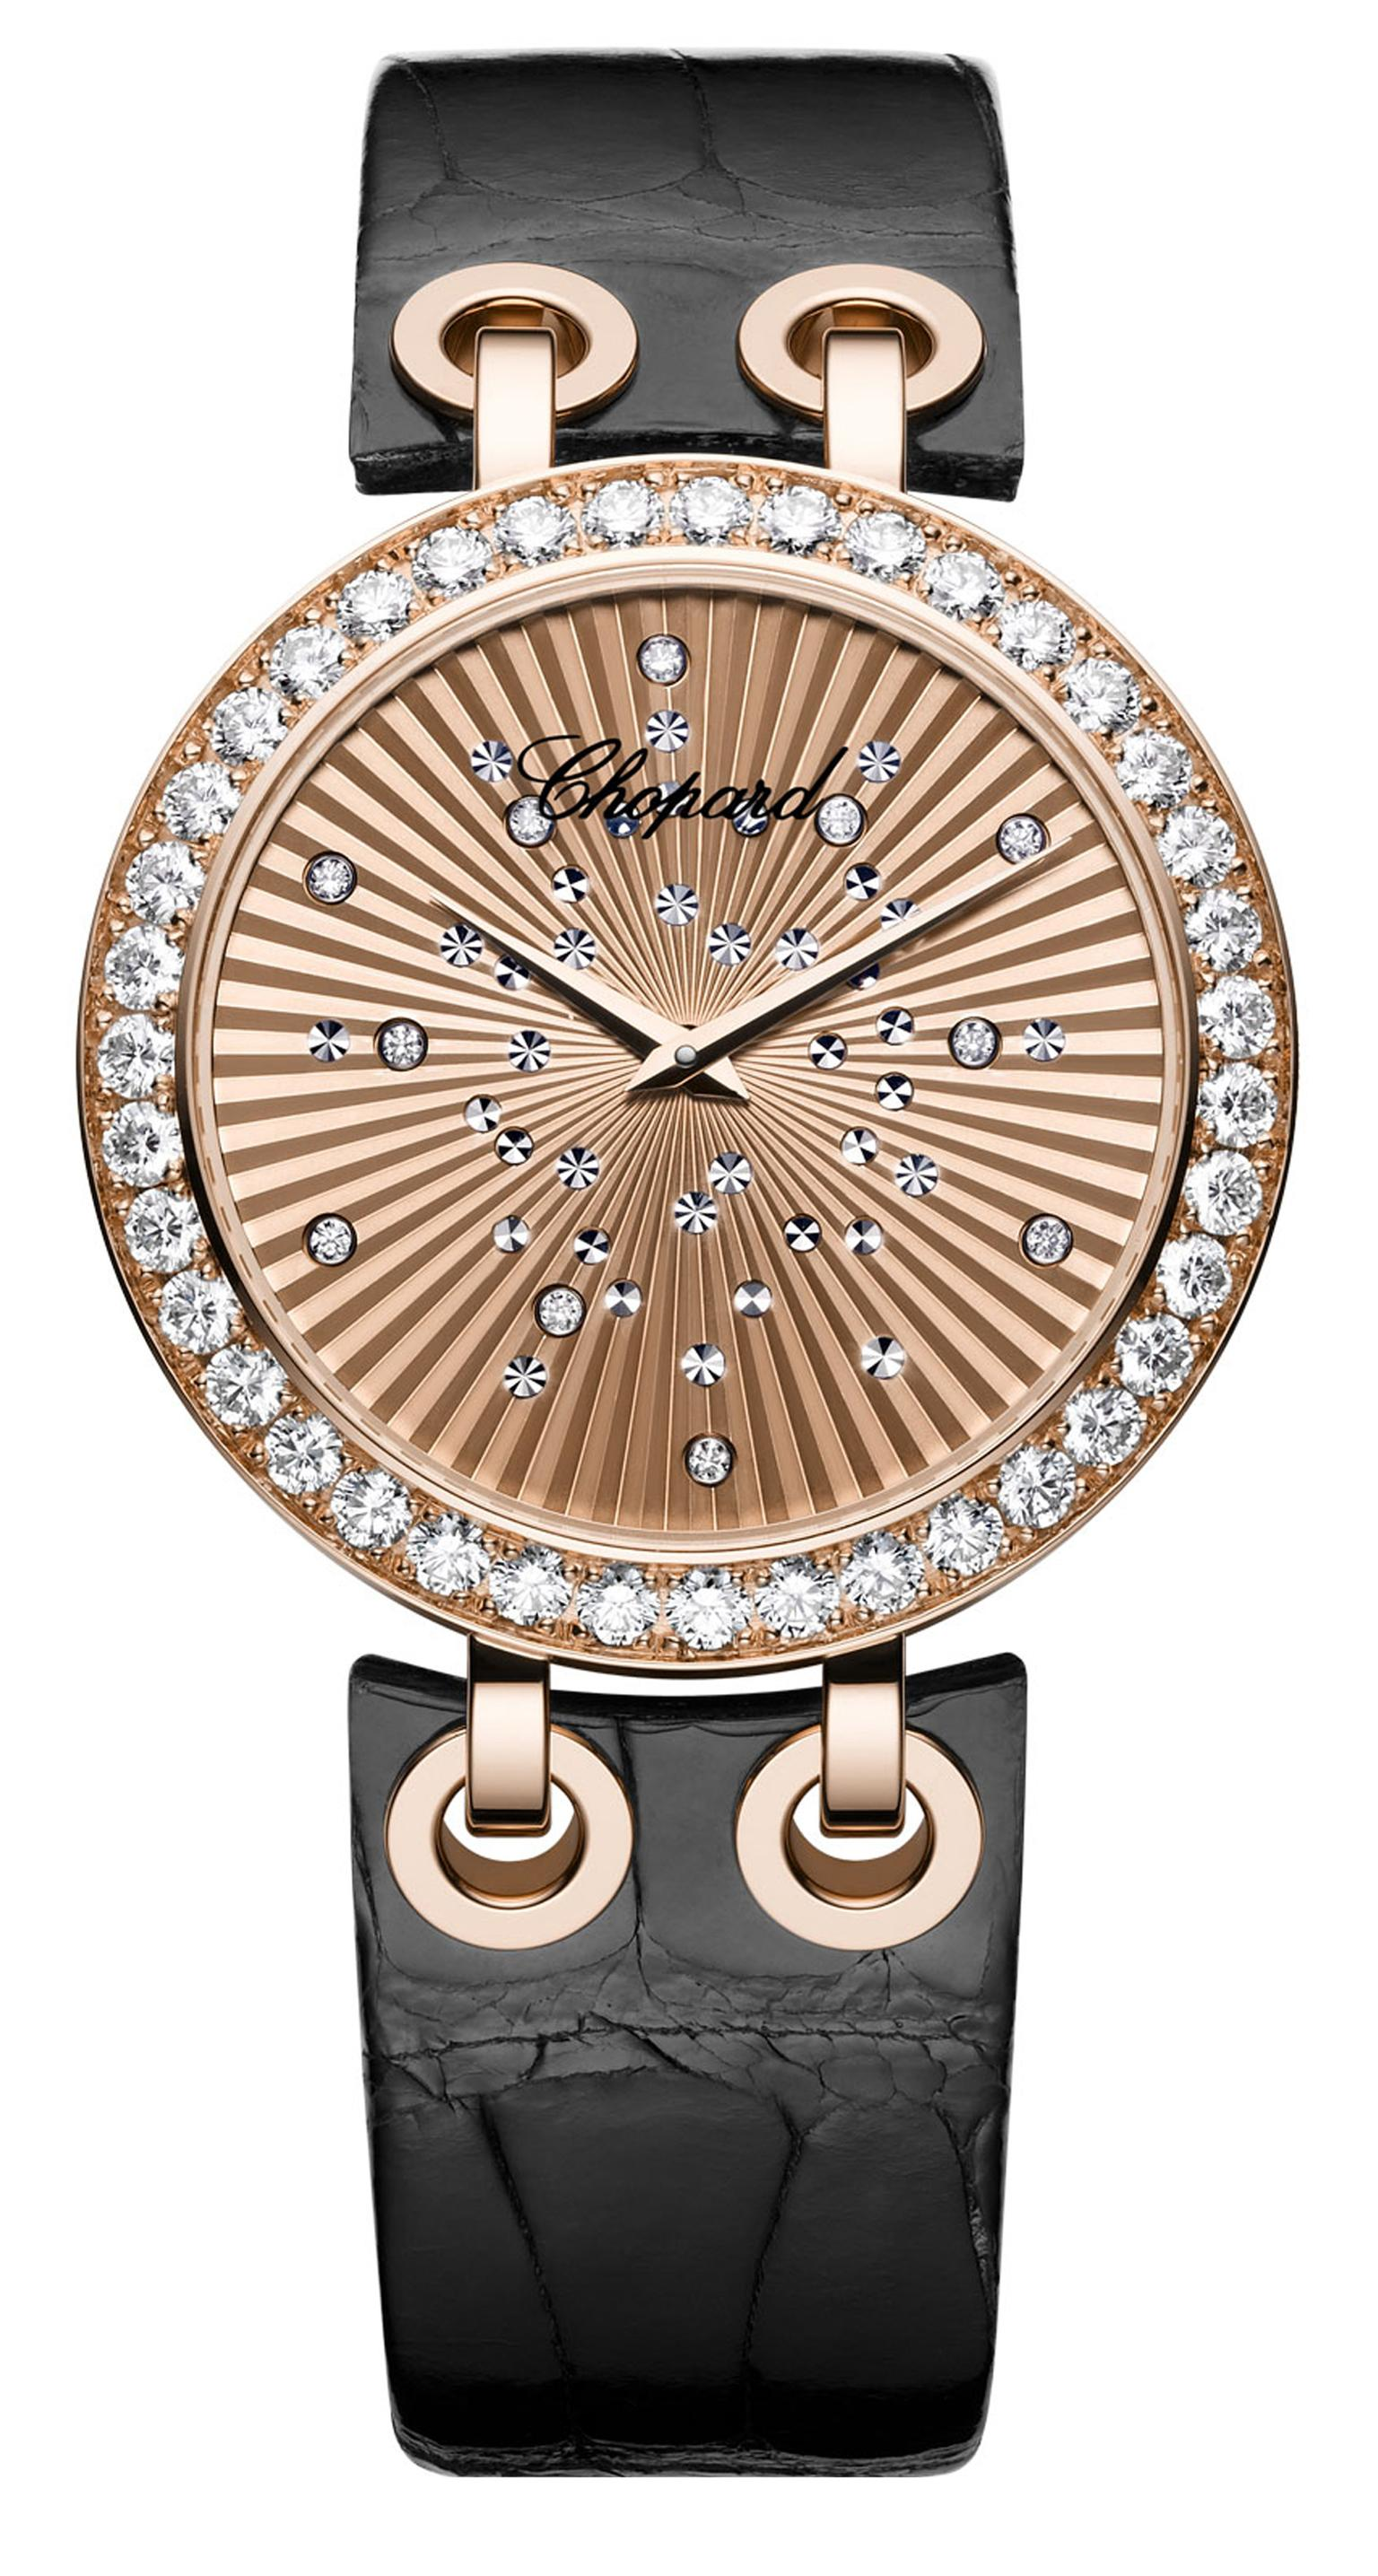 Chopard Xtravaganza watch in rose gold